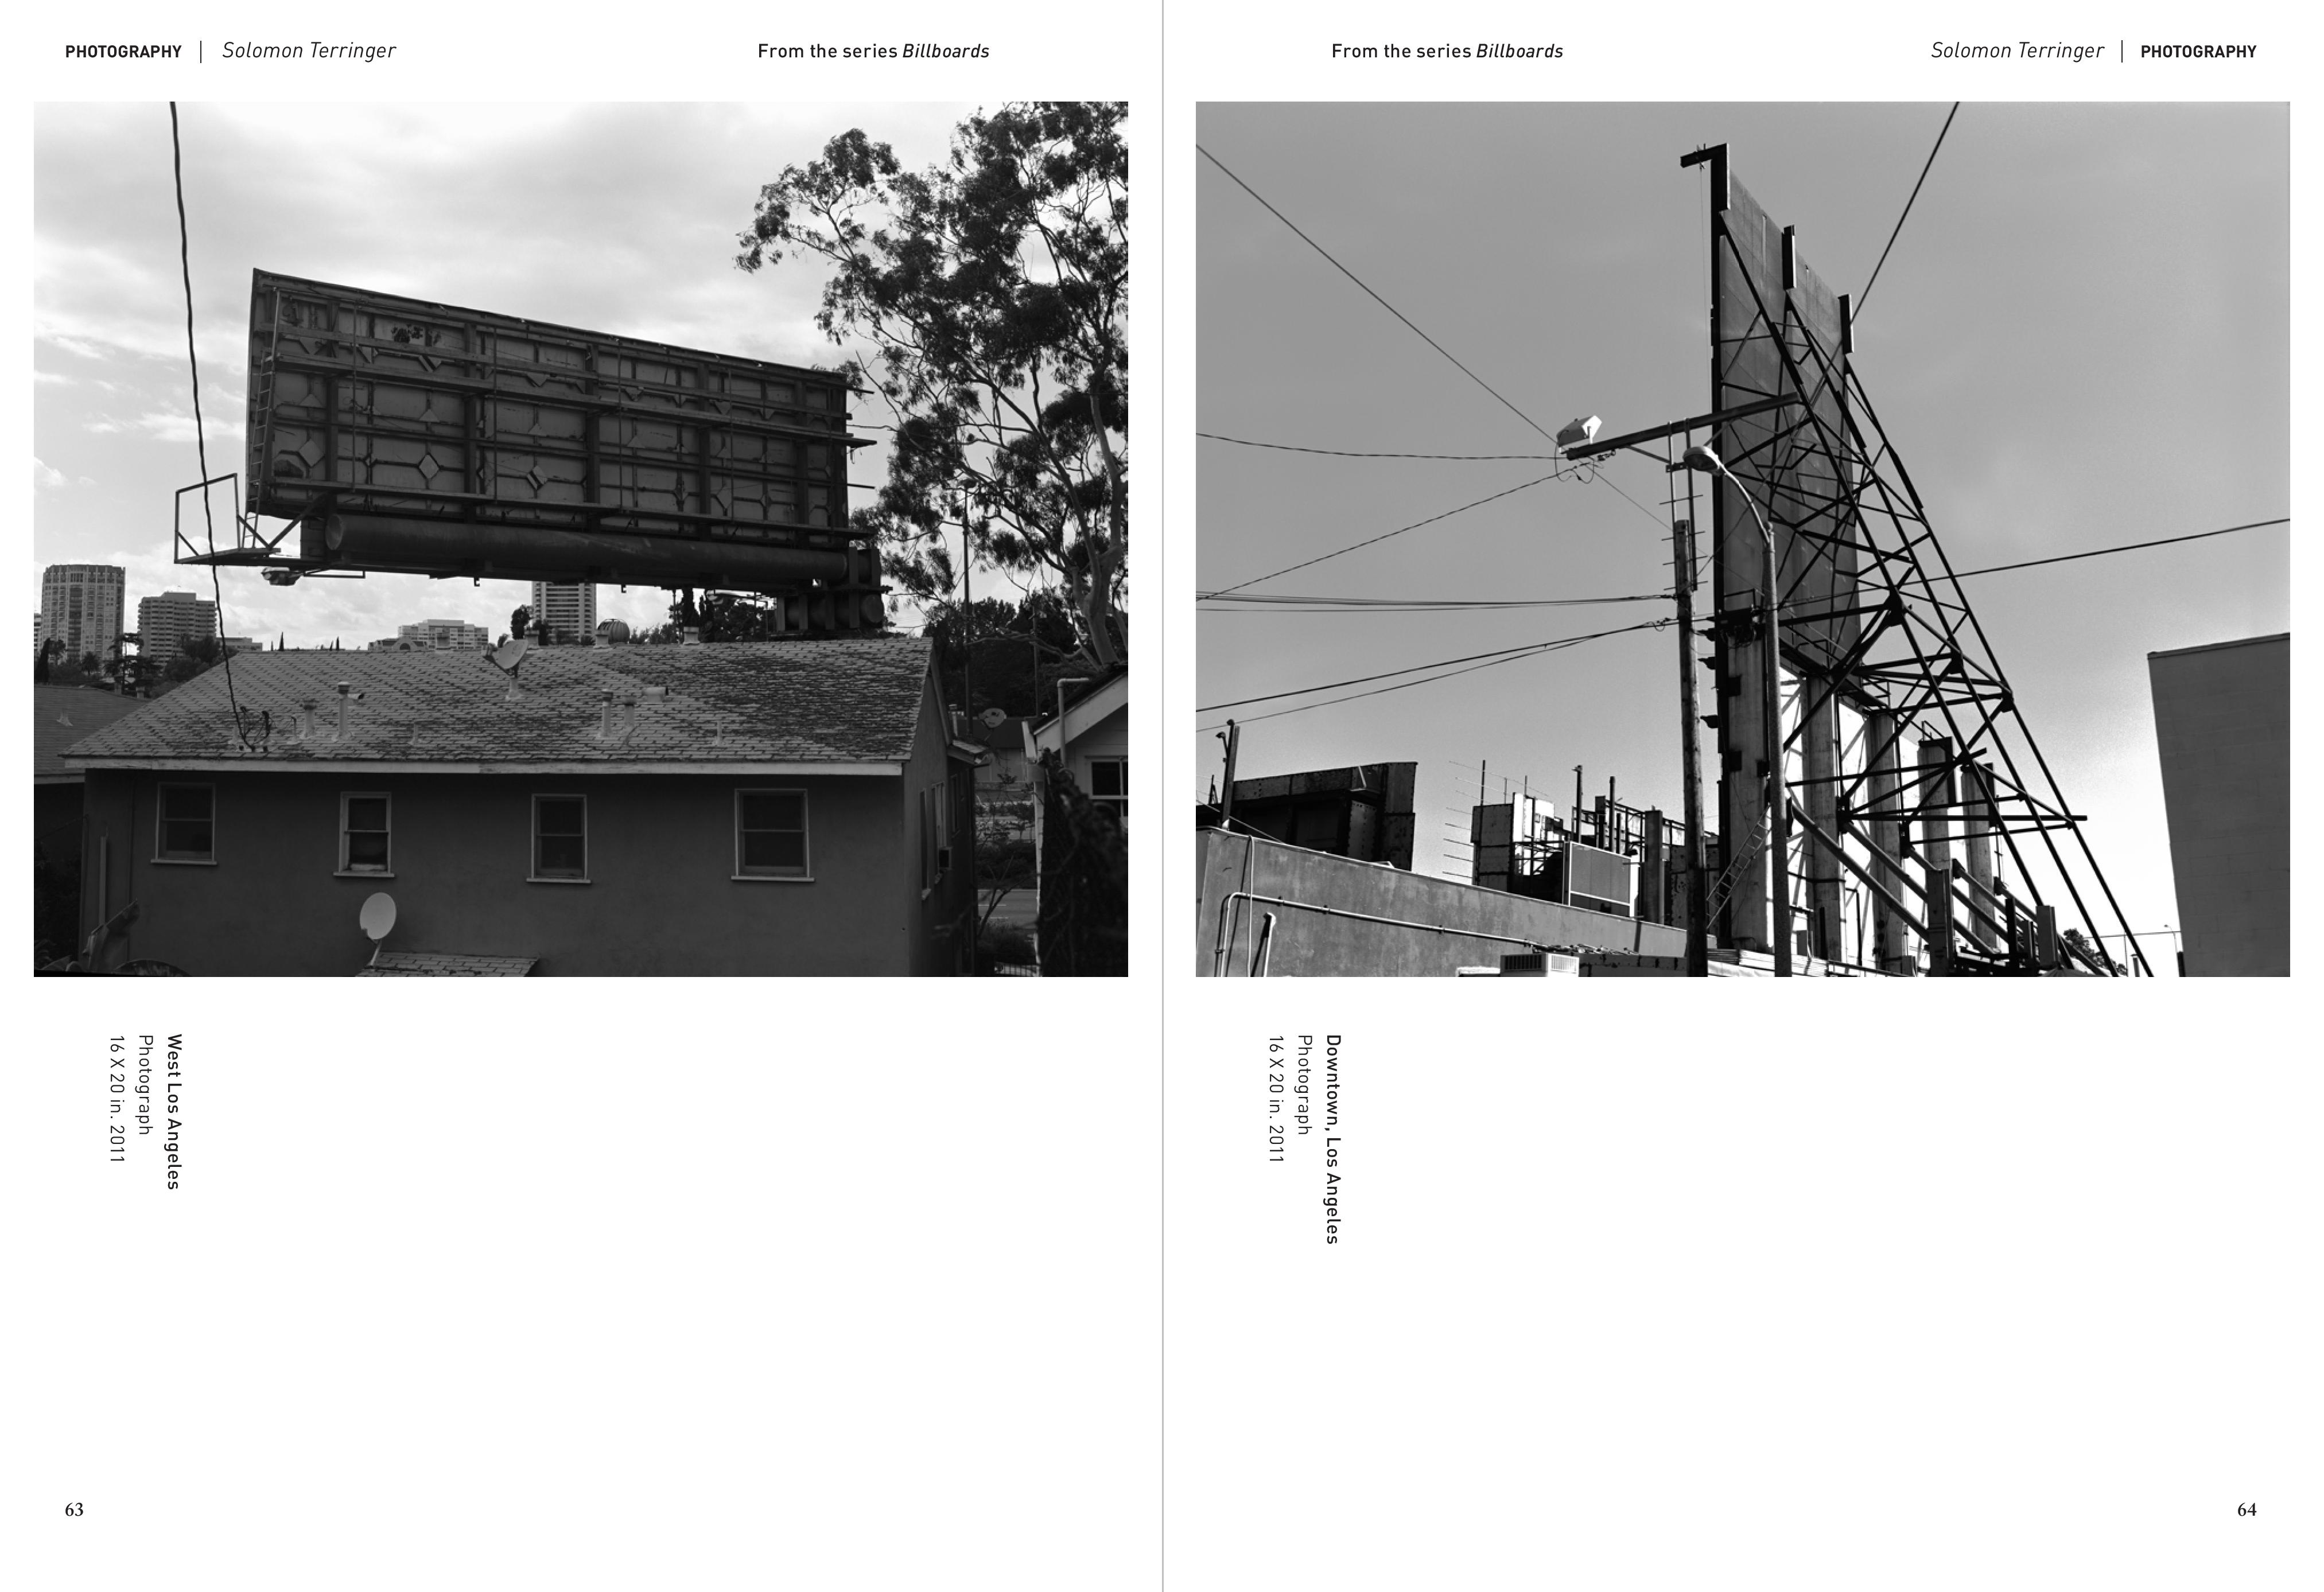 2012 Issue, Pages 63-64